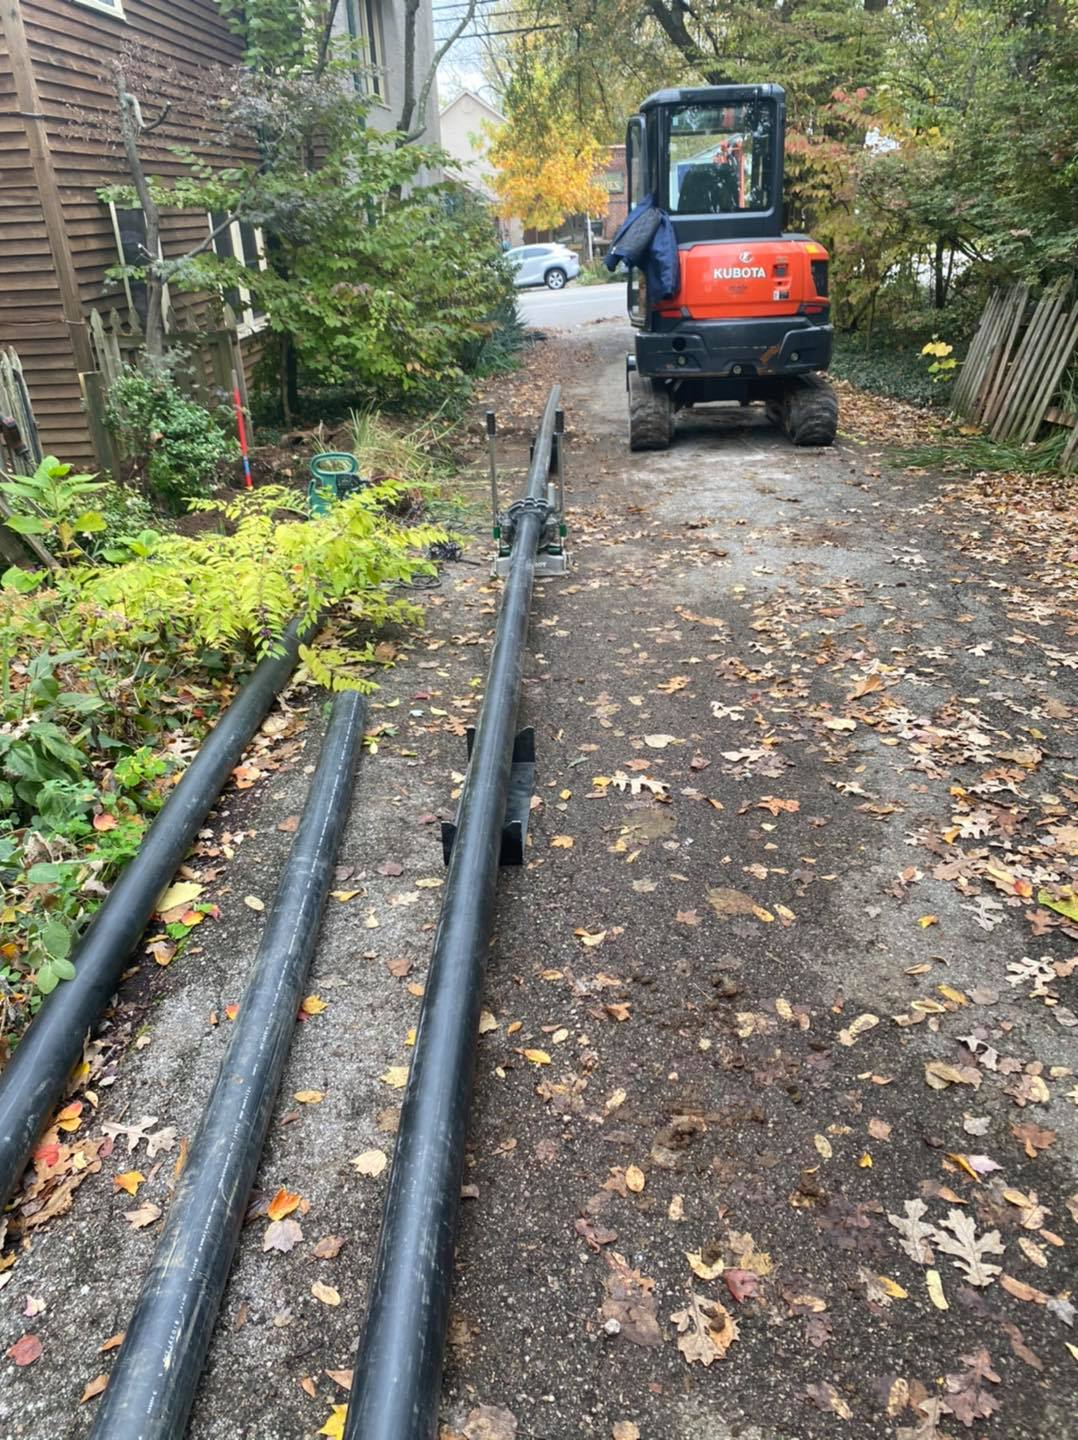 FB - Another Trenchless sewer line for install today!